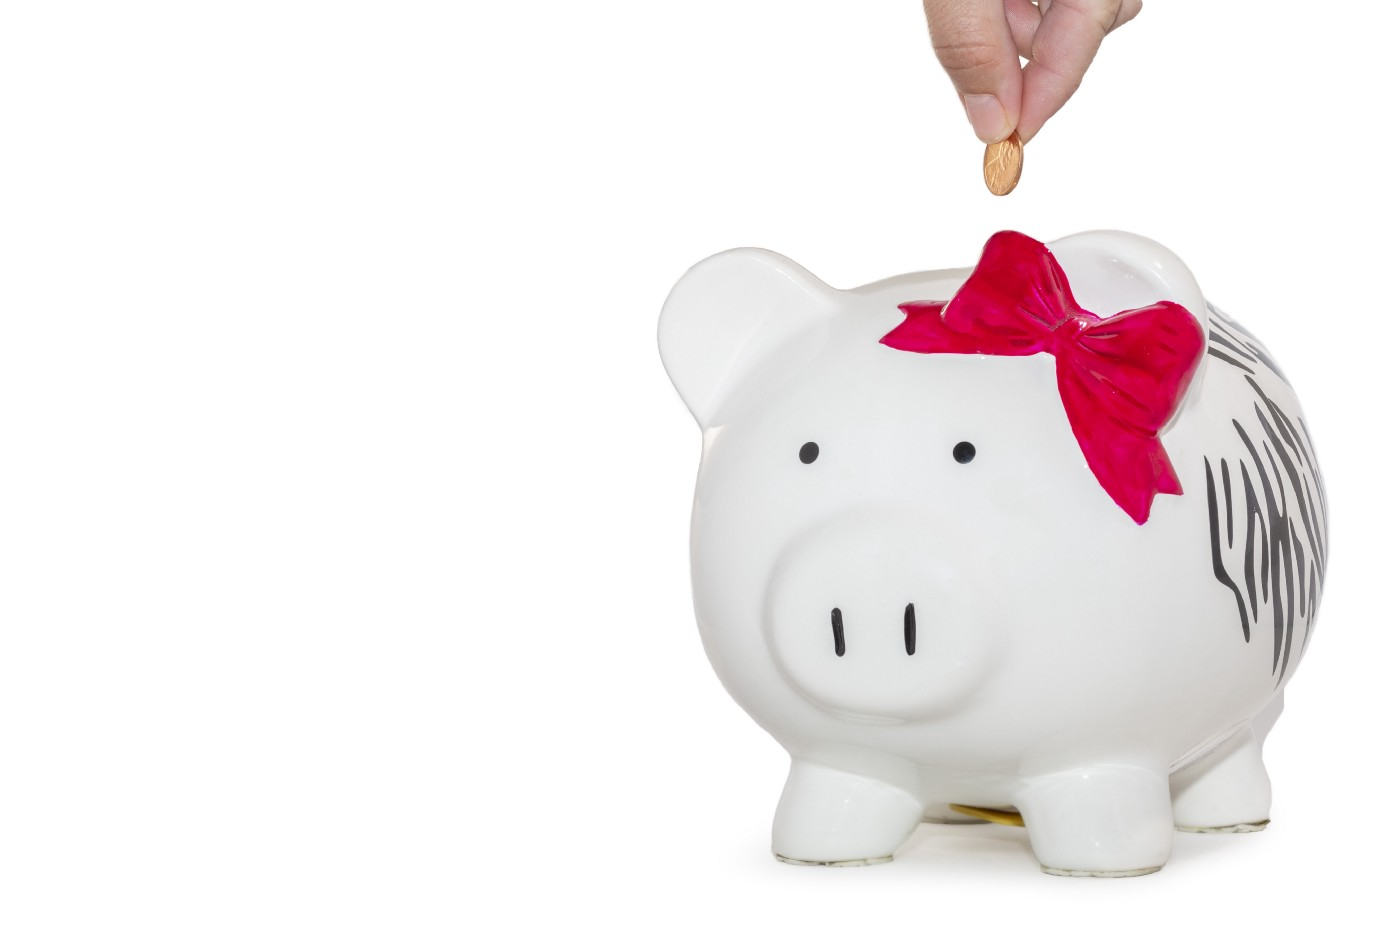 Savings is part of a household budget